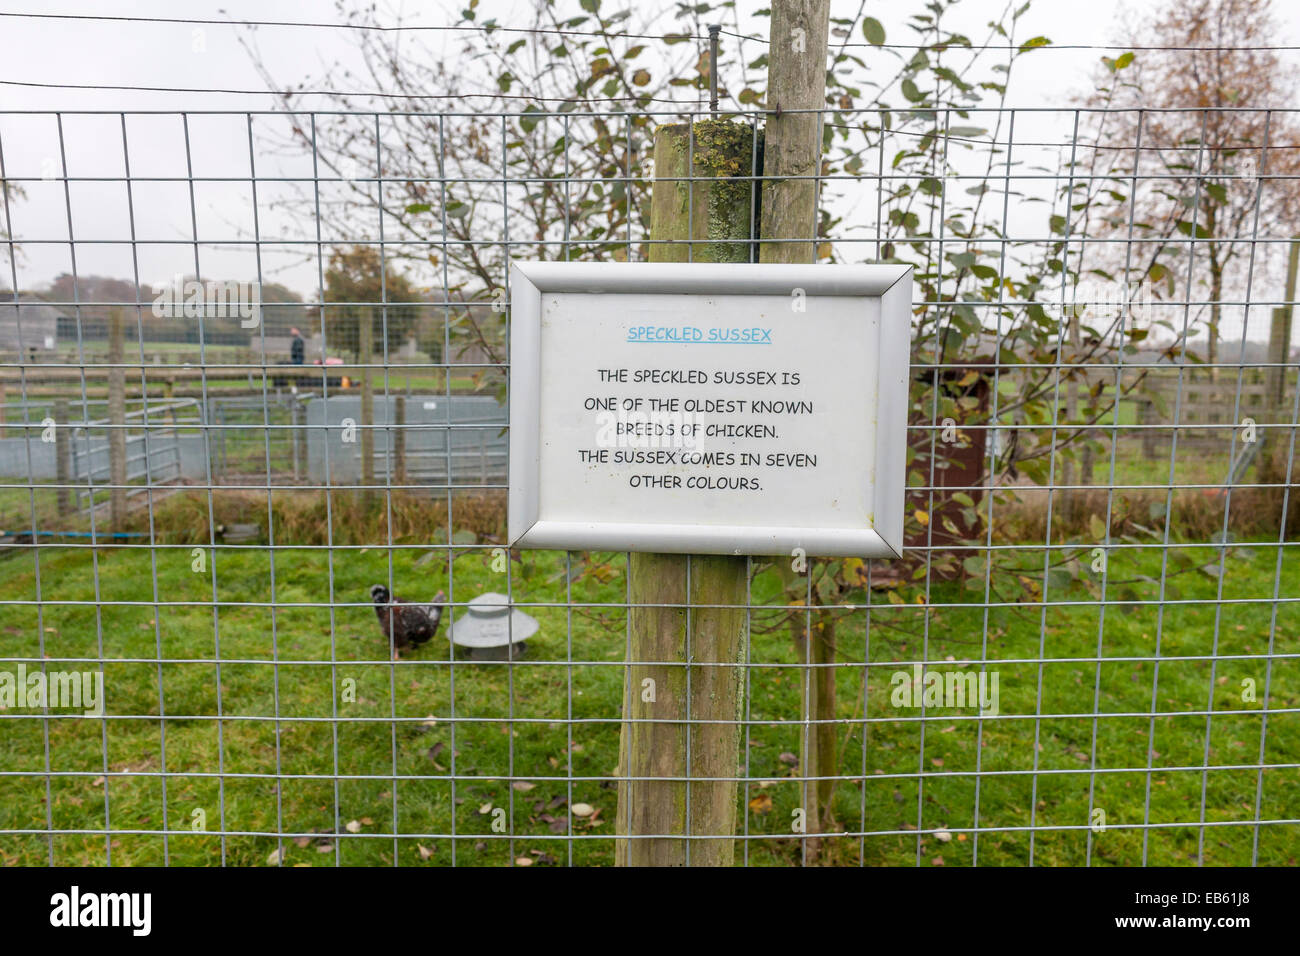 Speckled Sussex chicken enclosure at children's farm Odds Farm, Wooburn Common, Buckinghamshire, UK - Stock Image